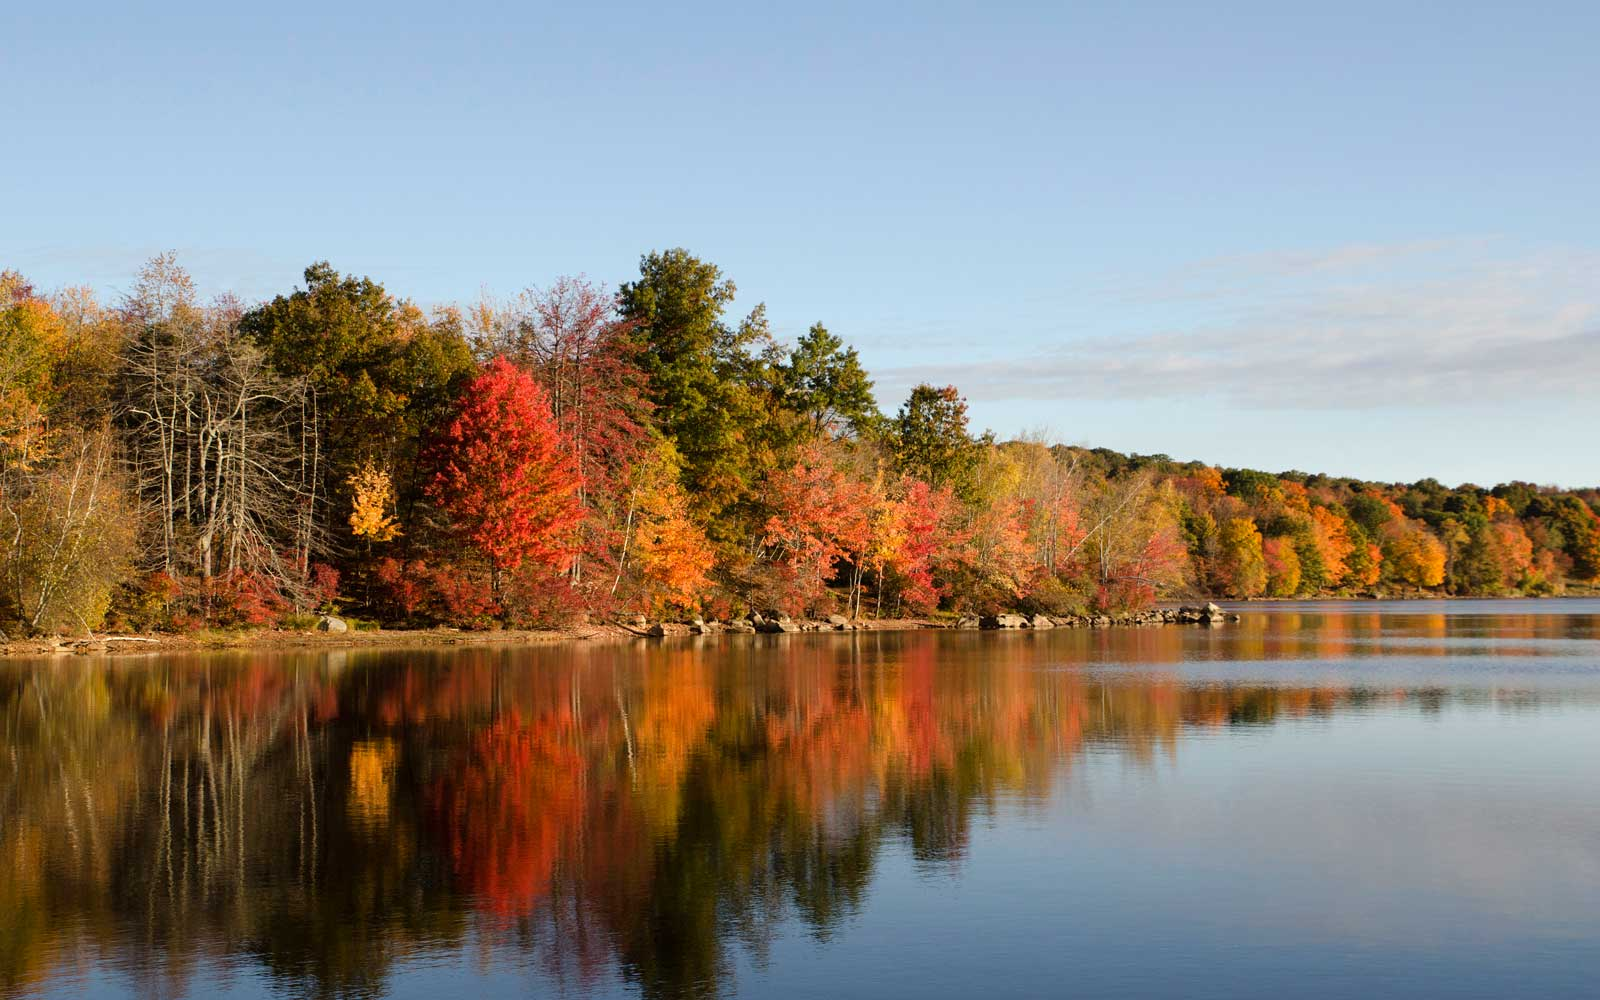 How to Perfect Your Fall Foliage Photography